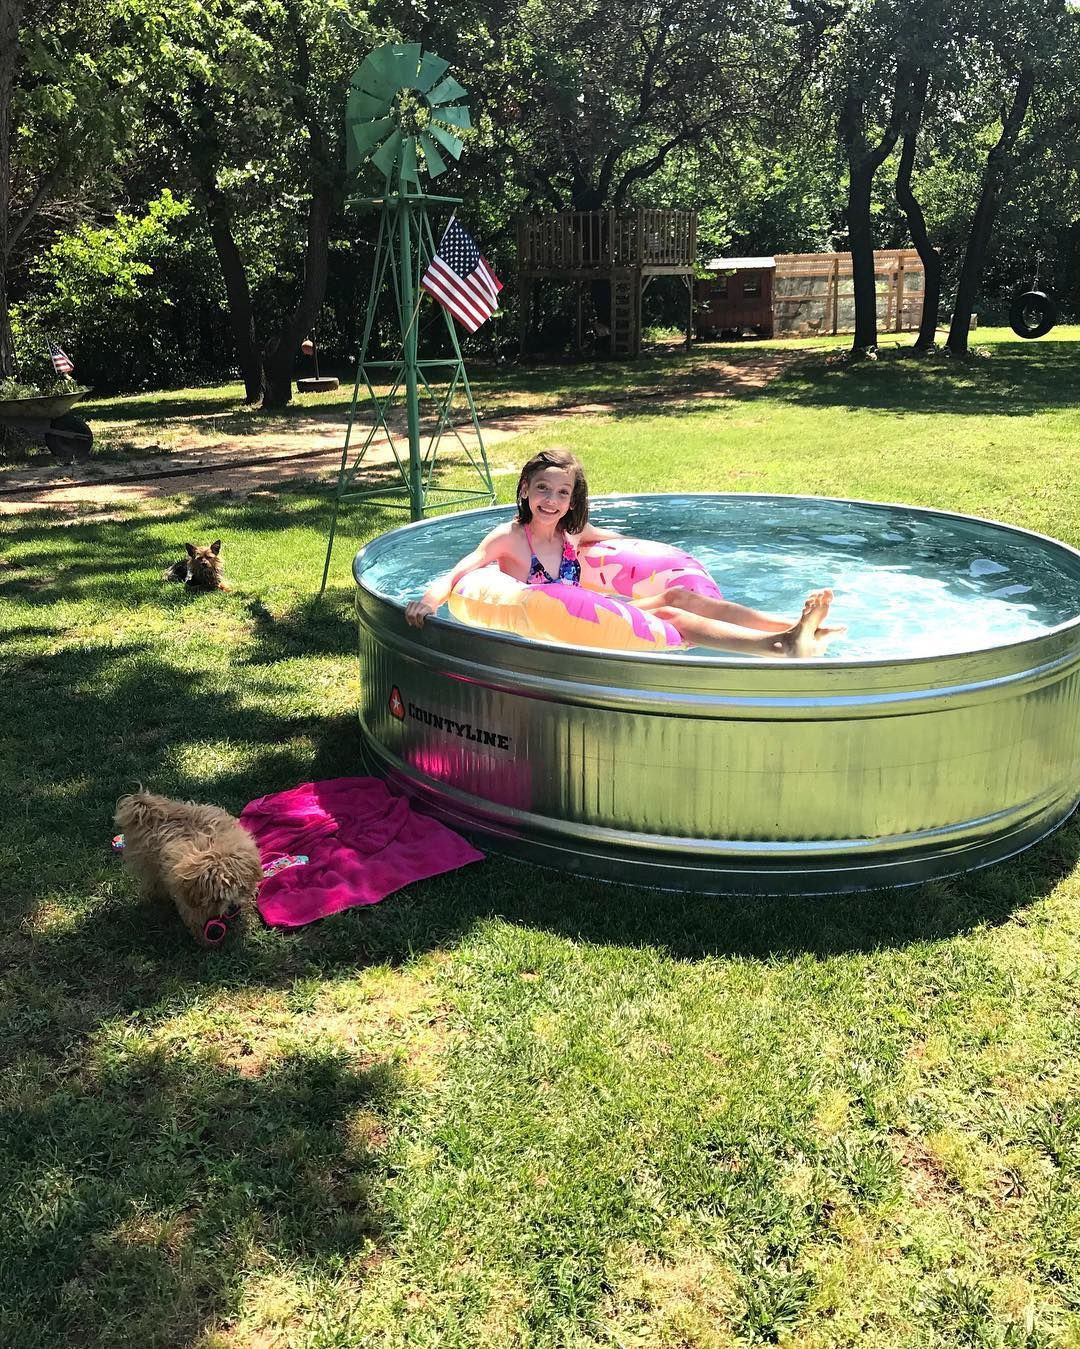 Tractor Supply Stock Tank Pool Is All Set Up And One Little Girl Is Making Some Great Childhood Memories Countyline T Stock Tank Pool Stock Tank Tank Pool